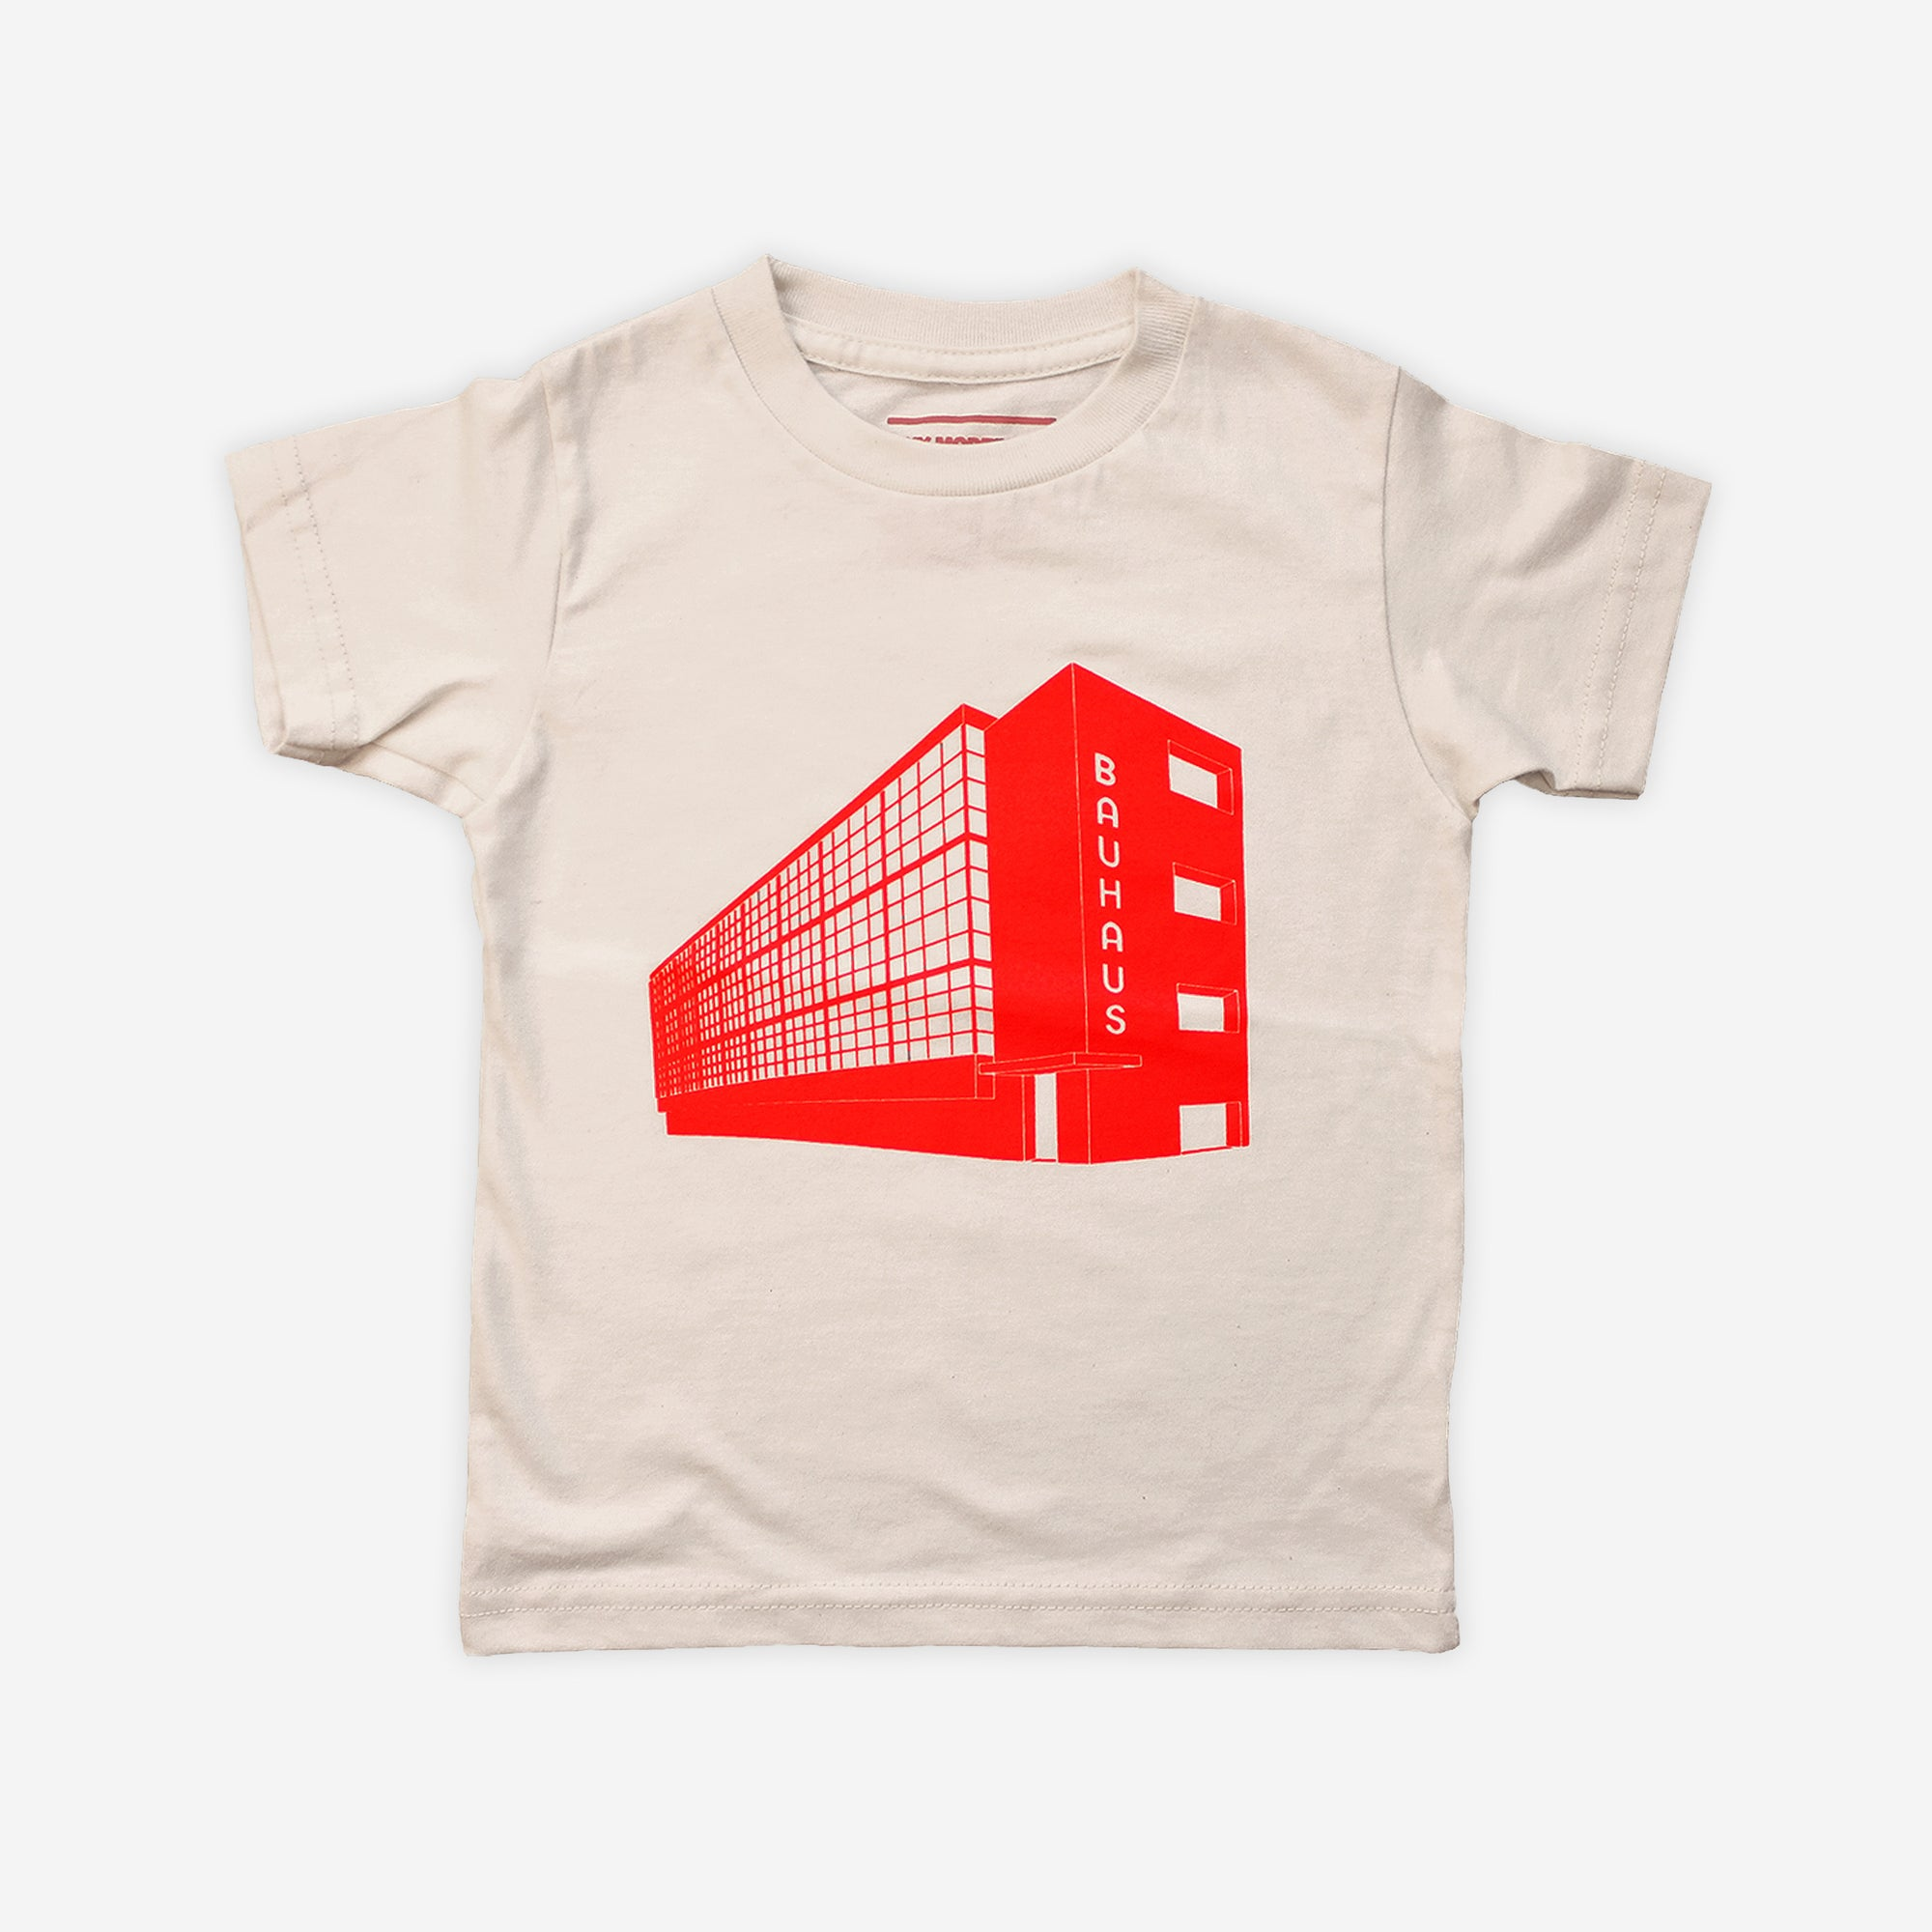 Image of Mini Bauhaus - tee